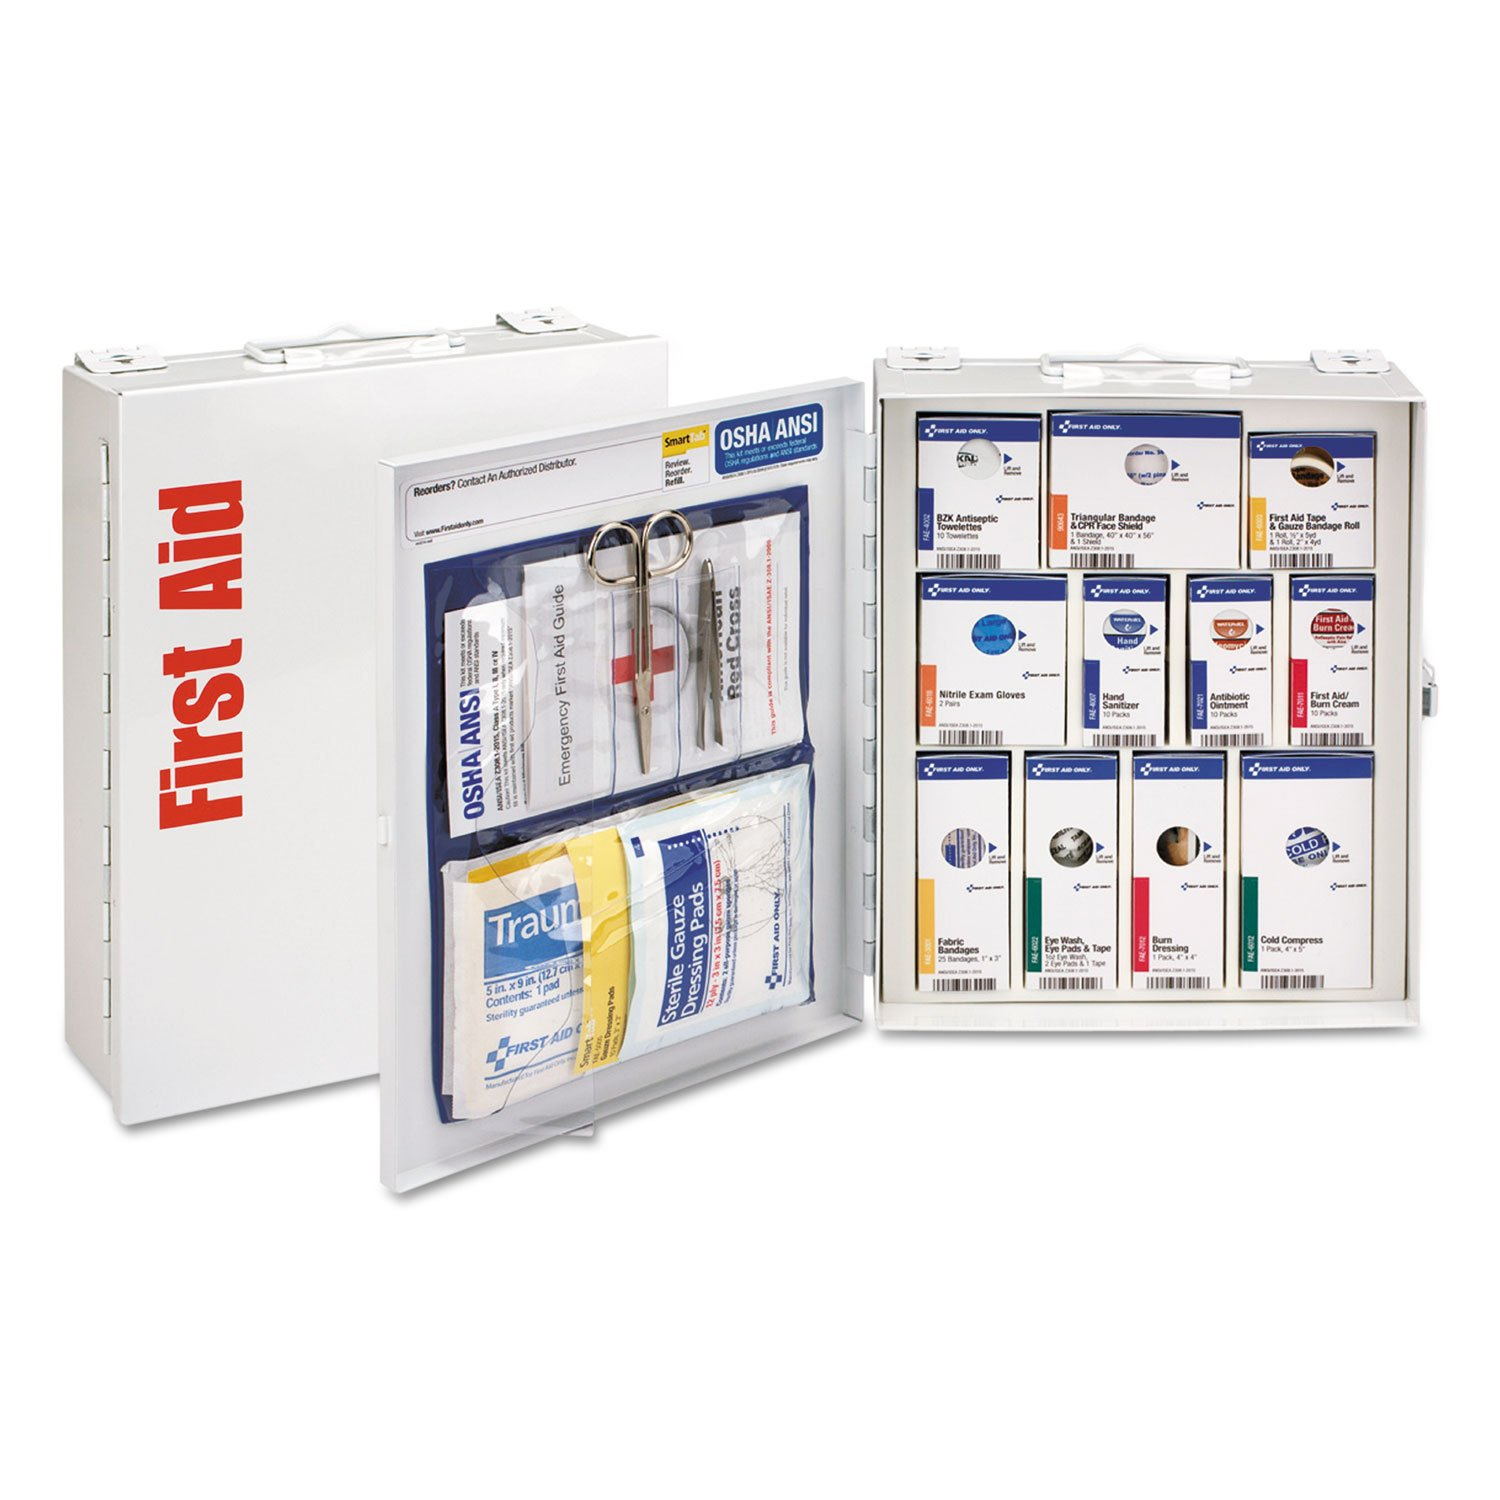 Smartcompliance First Aid Station For 25 People, 96 Pieces